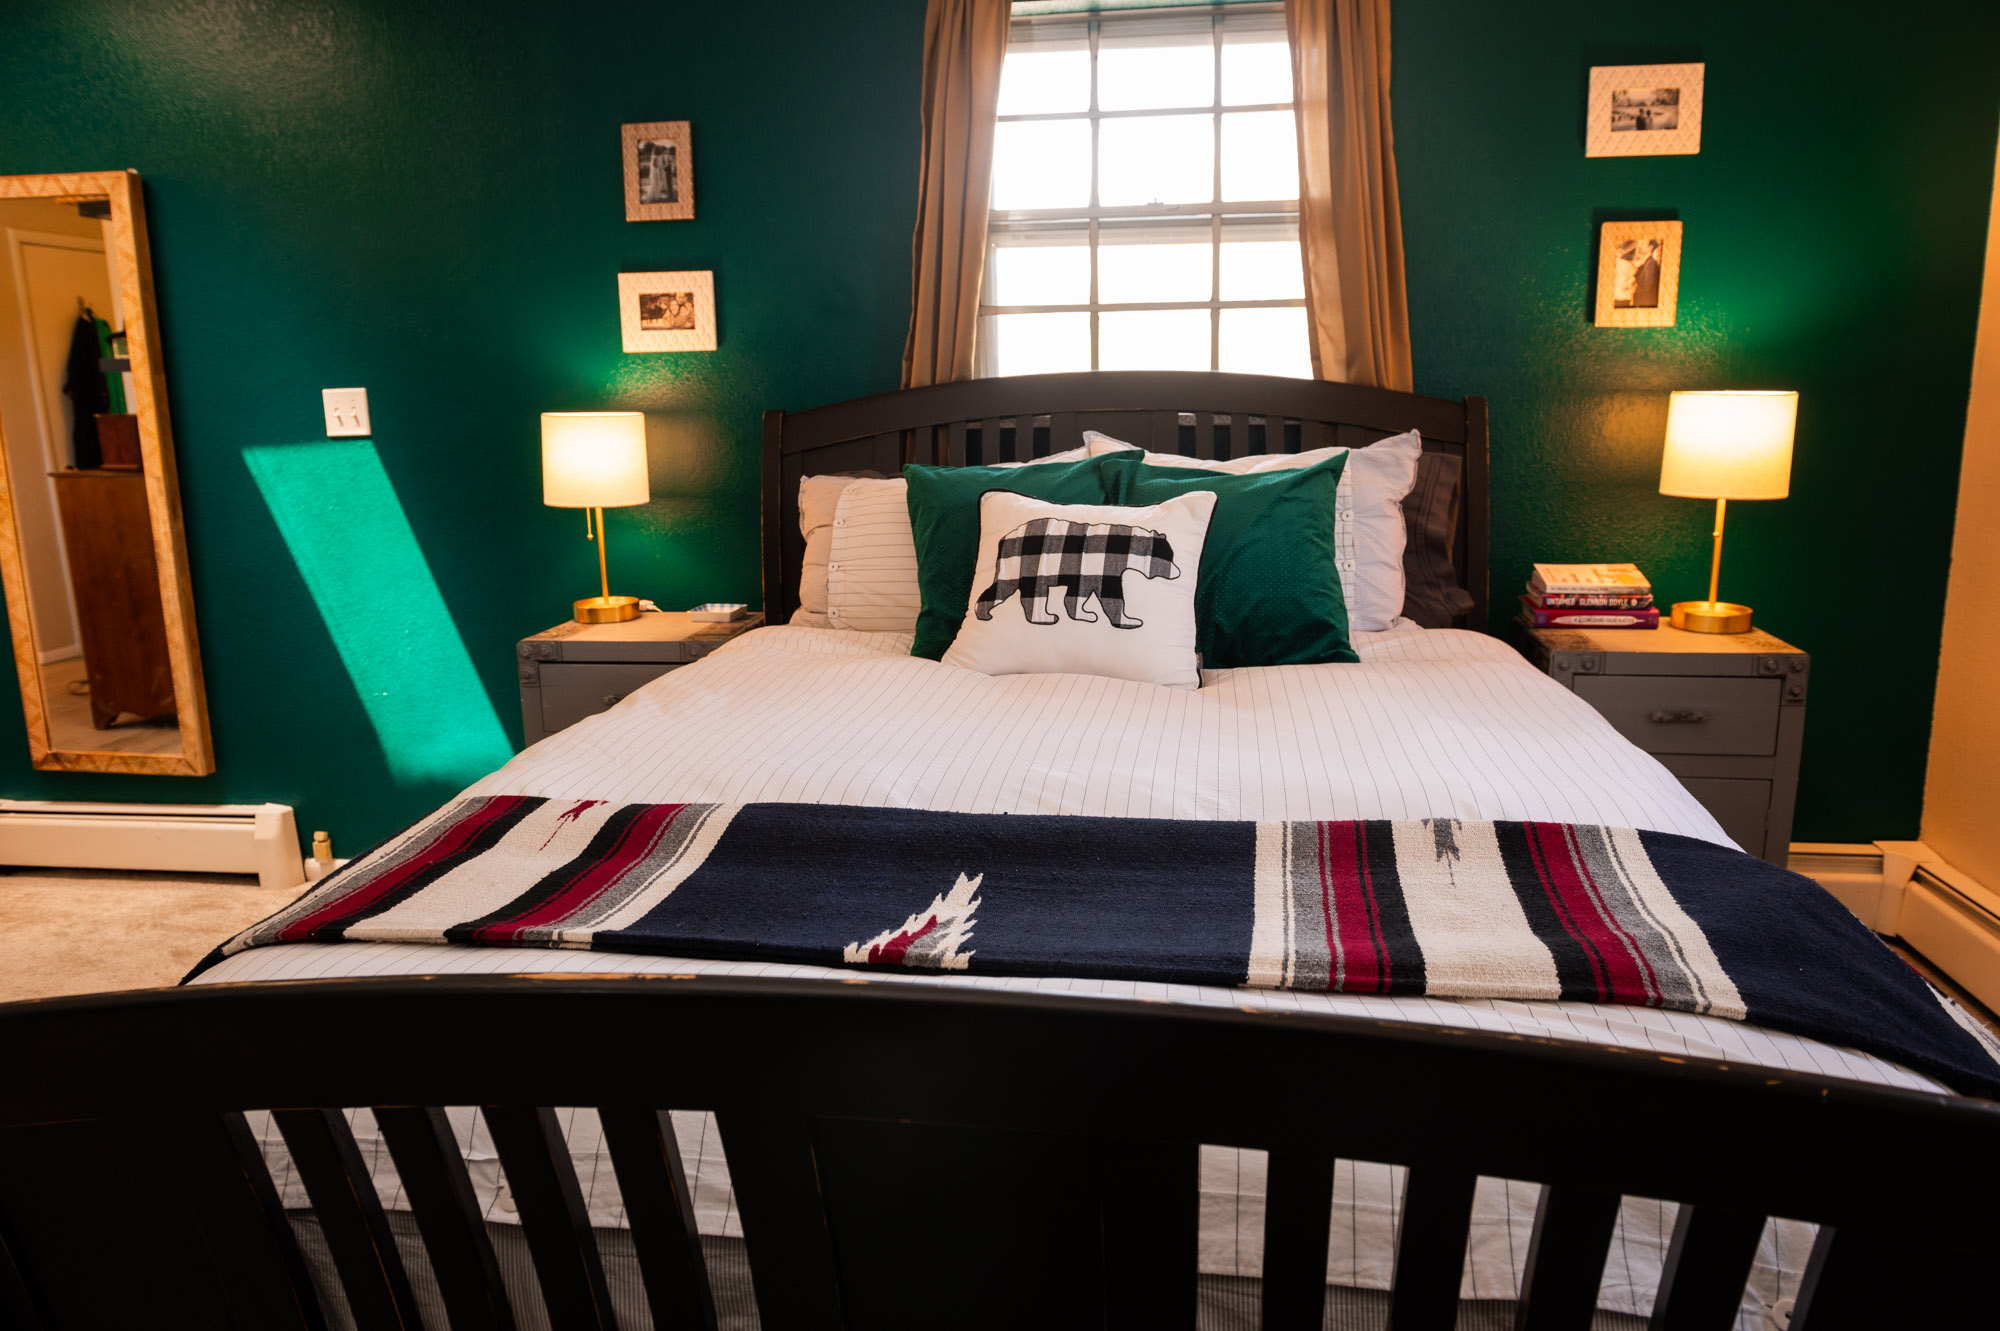 Hovering over the bed with the dark emerald green wall and gold curtains behind it